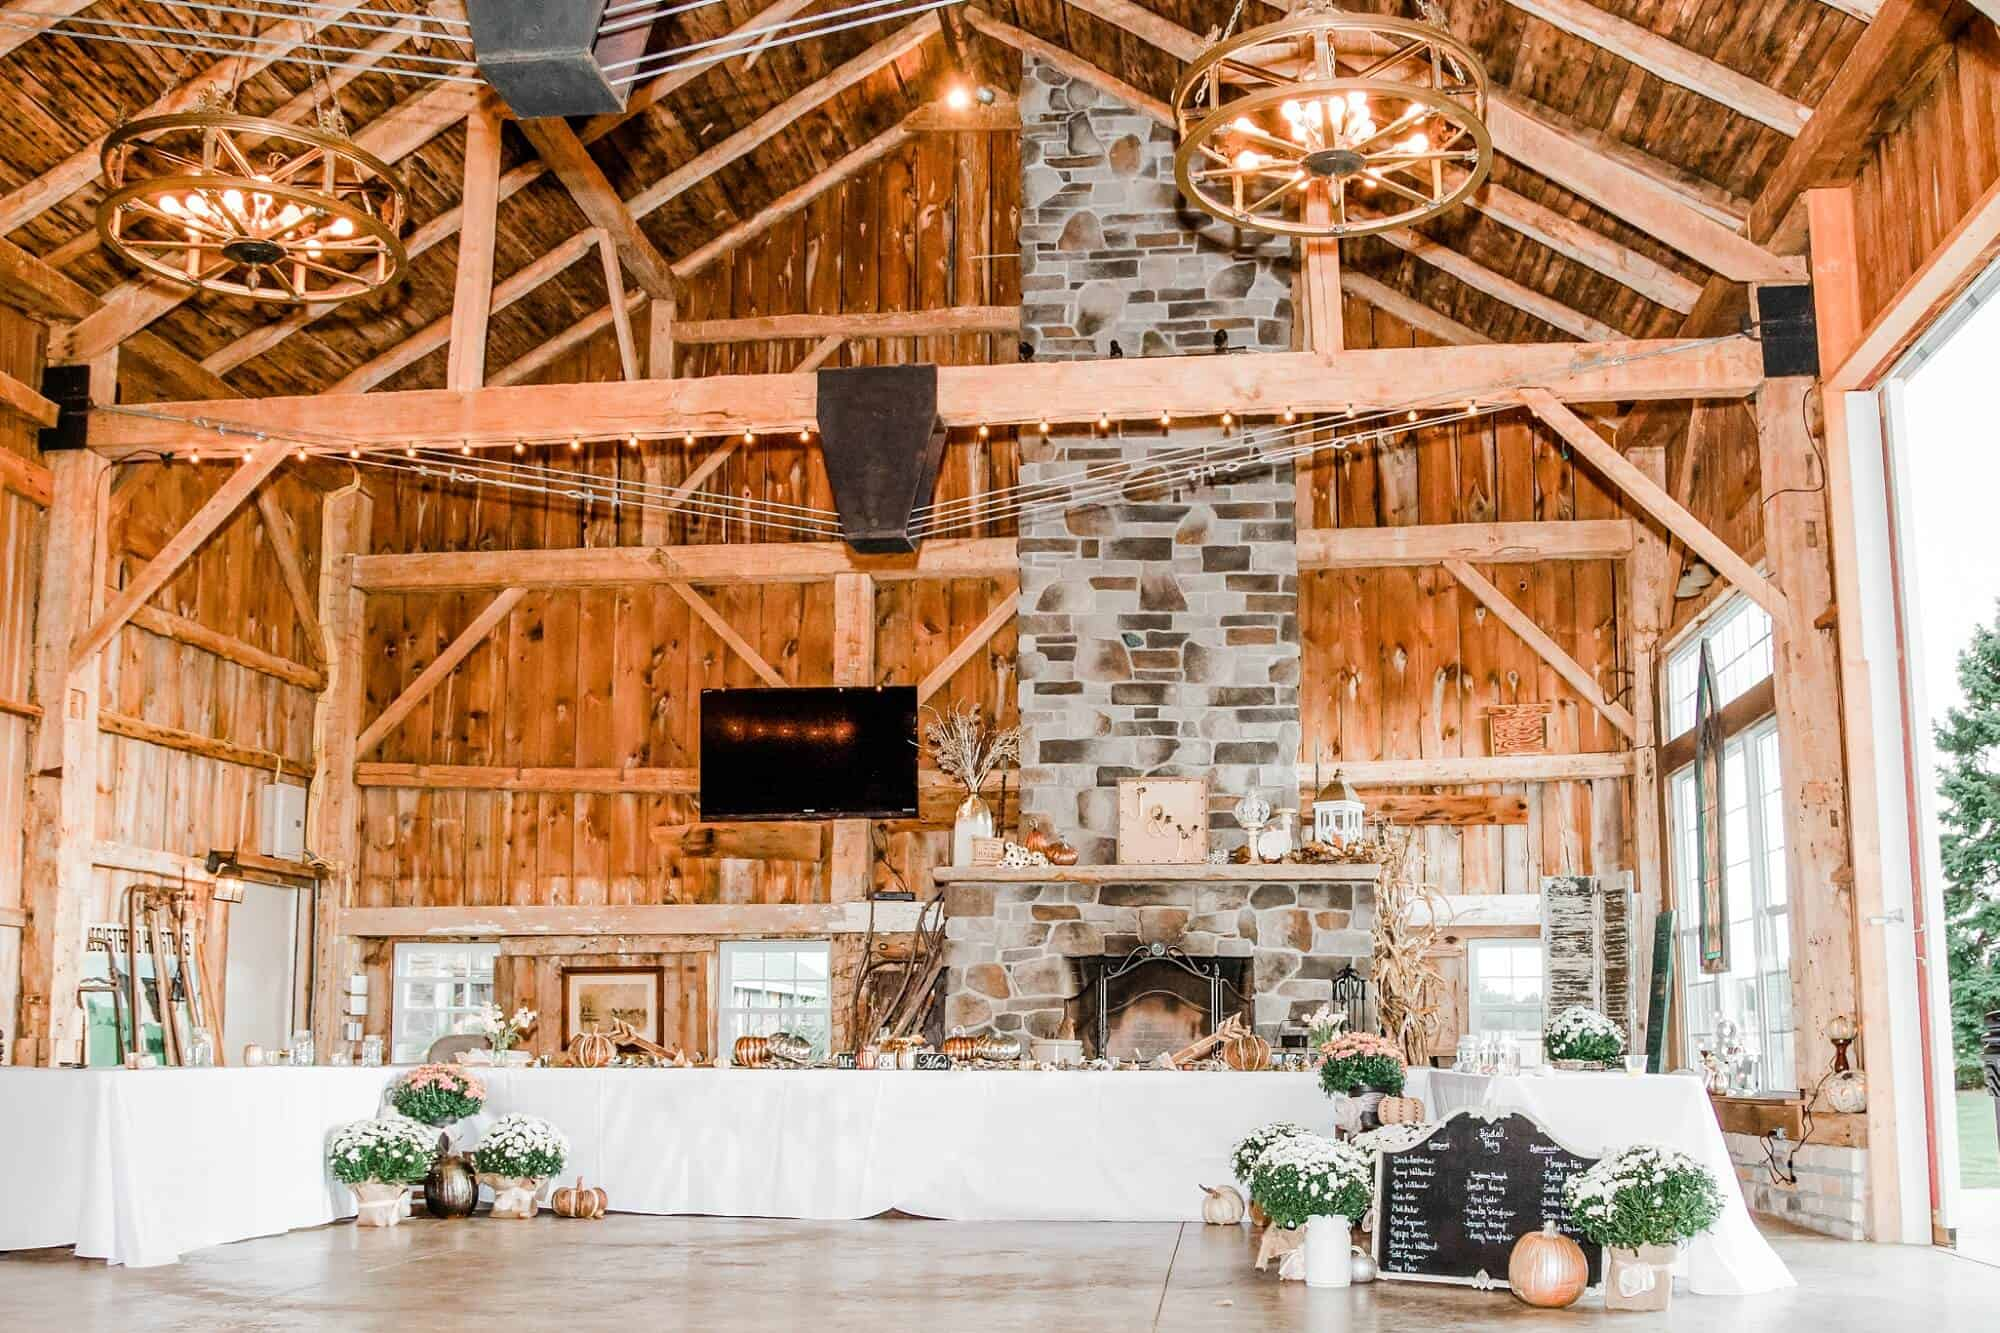 kilkerrin barn rustic wedding venue north central ohio